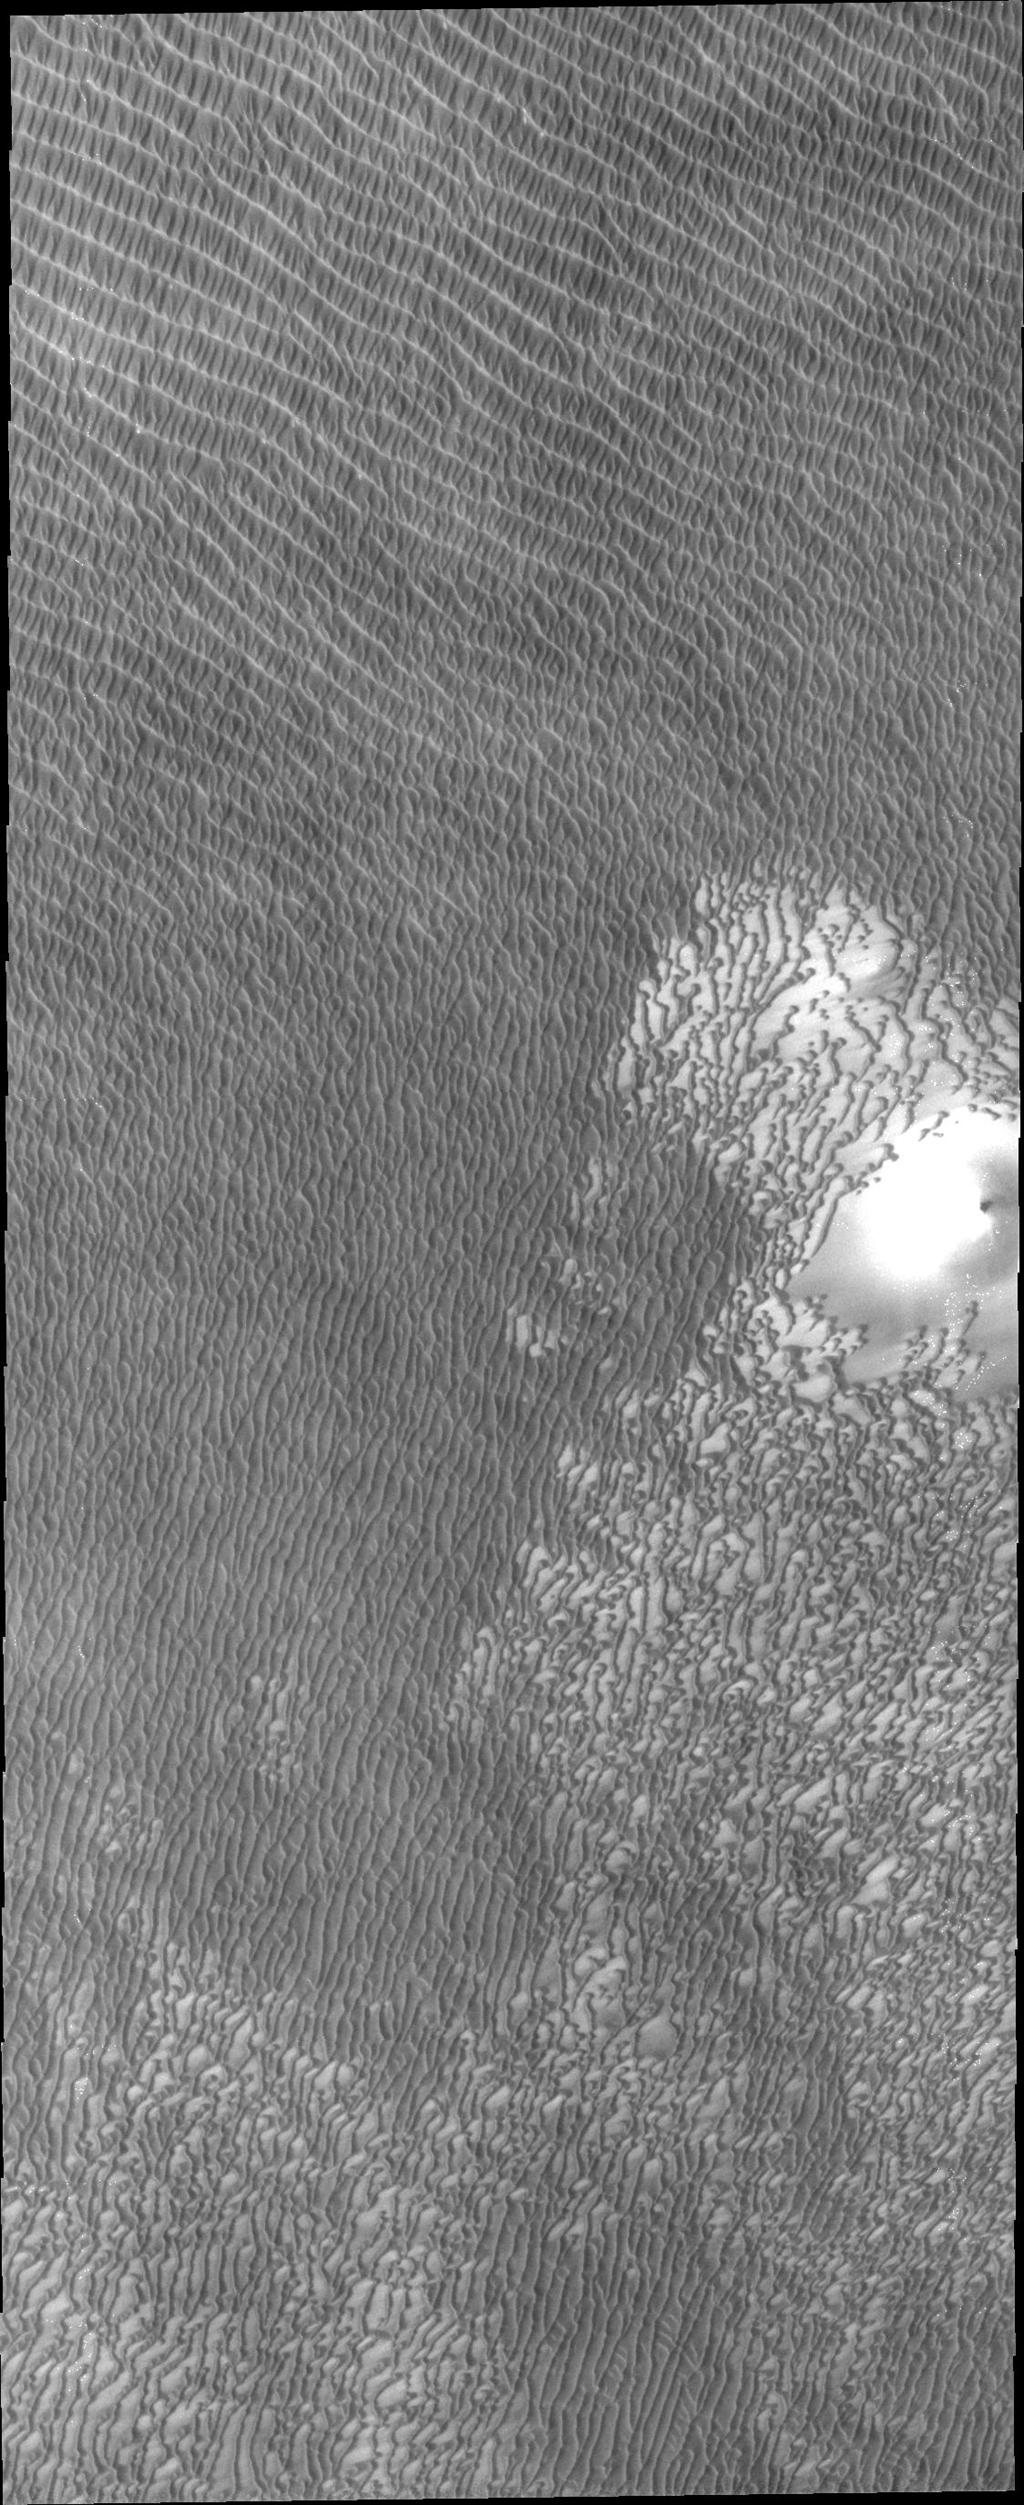 This image from NASA's Mars Odyssey show regions of densely coalesced dunes, common around the North Polar cap of Mars.